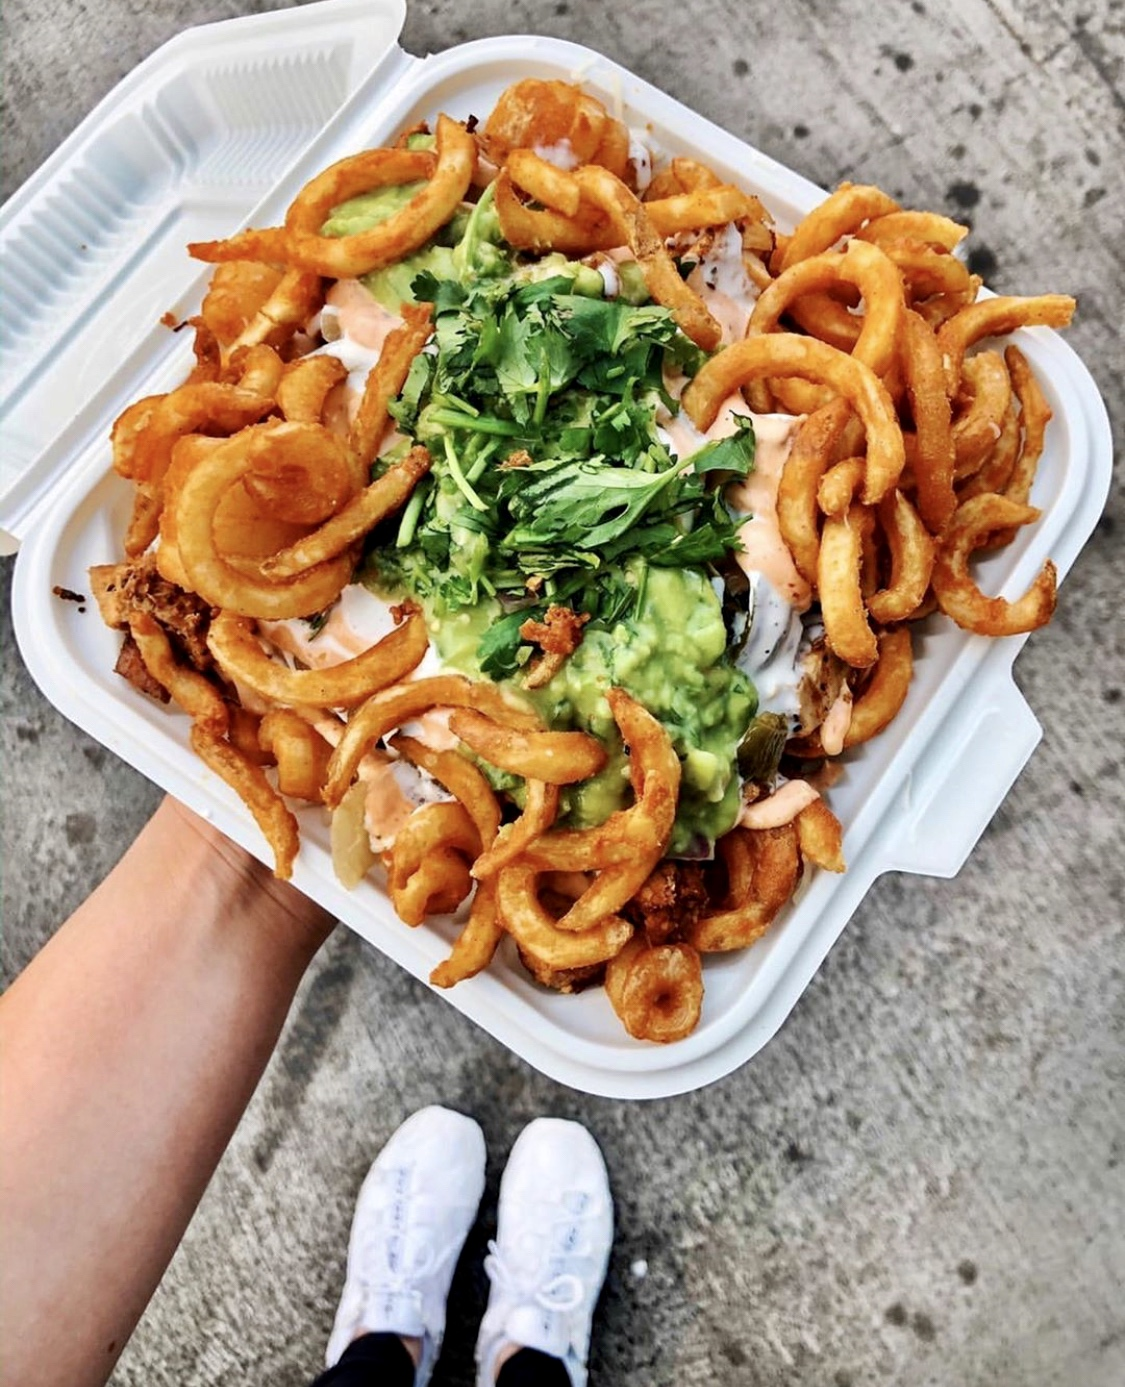 curly fries topped with guacamole in styrofoam container